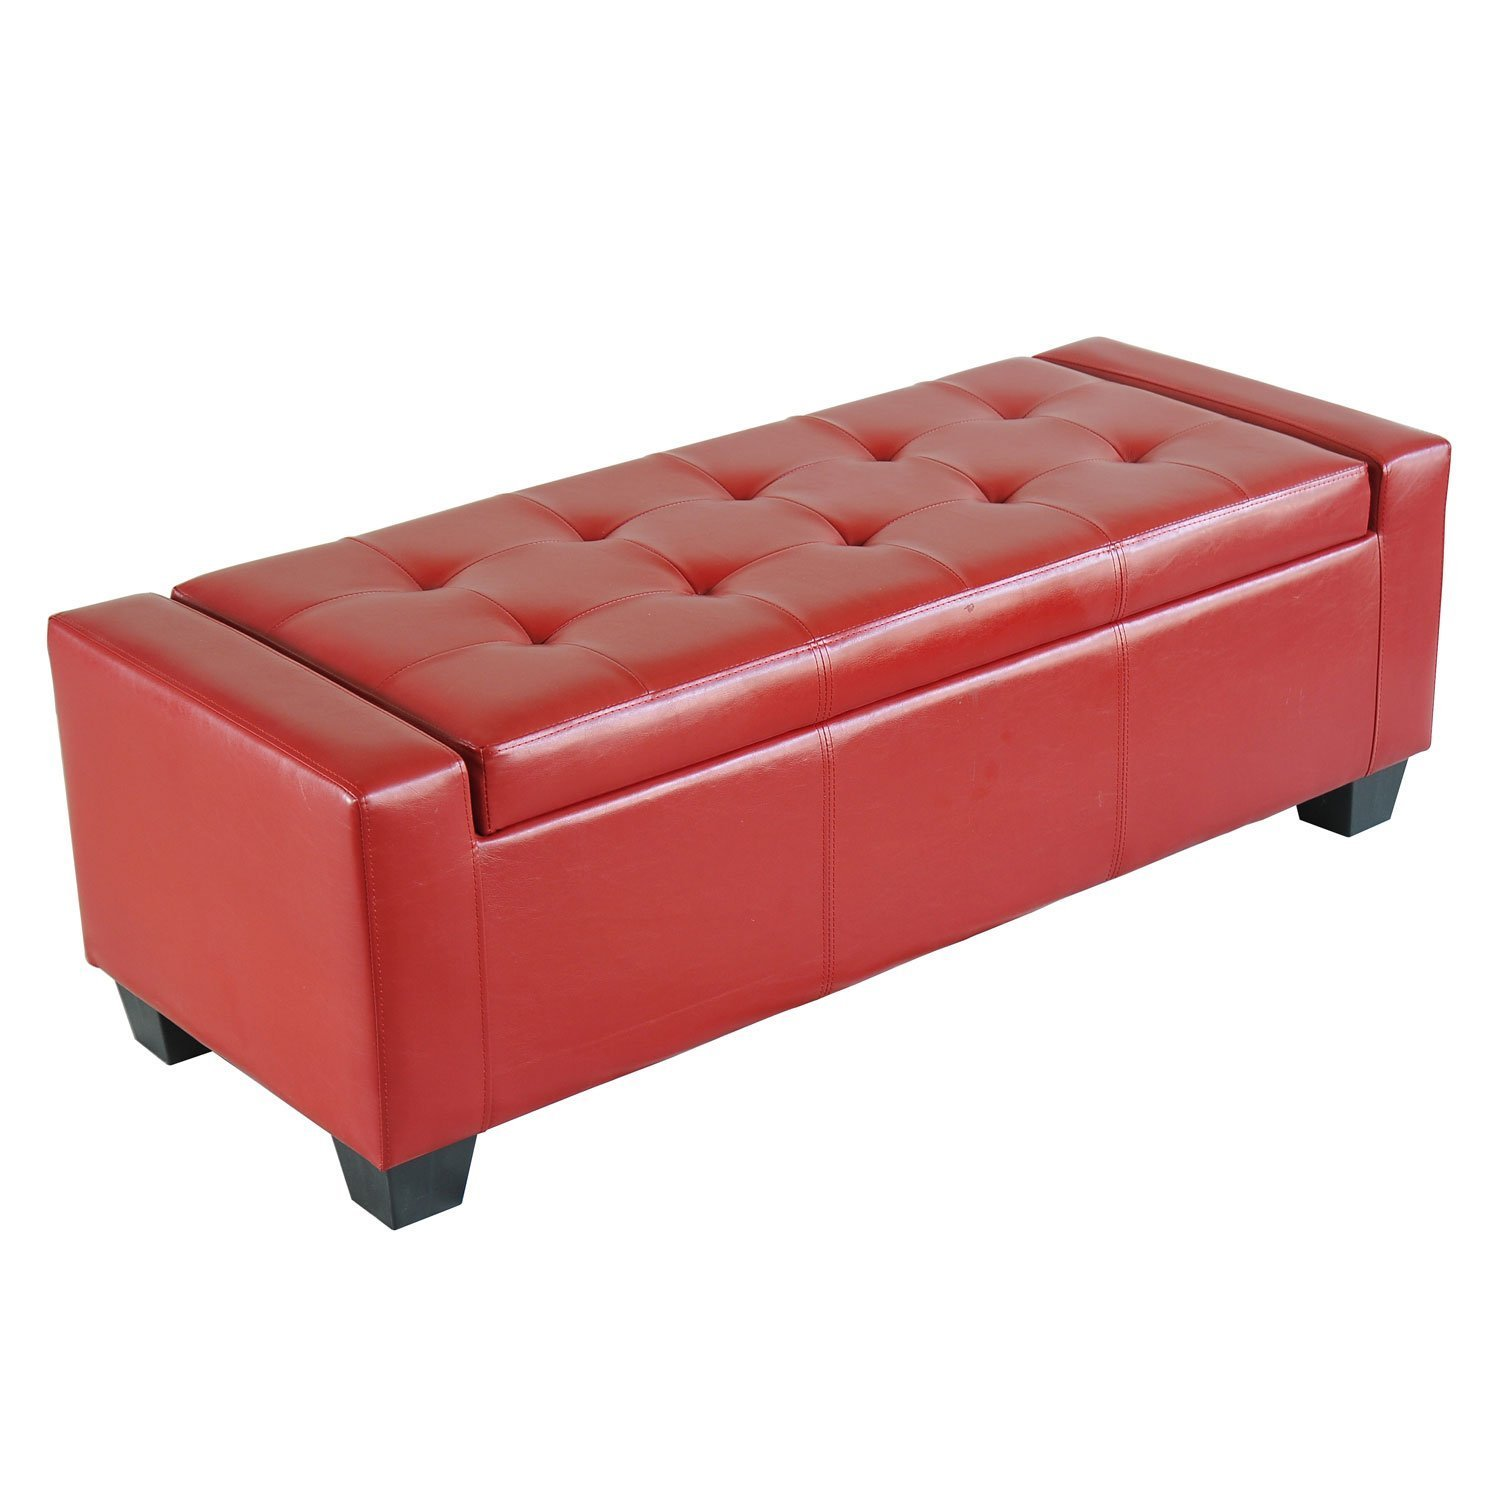 dining cosmopolitan red home kitchen storage amazon ottoman bench espresso simpli brown dp com